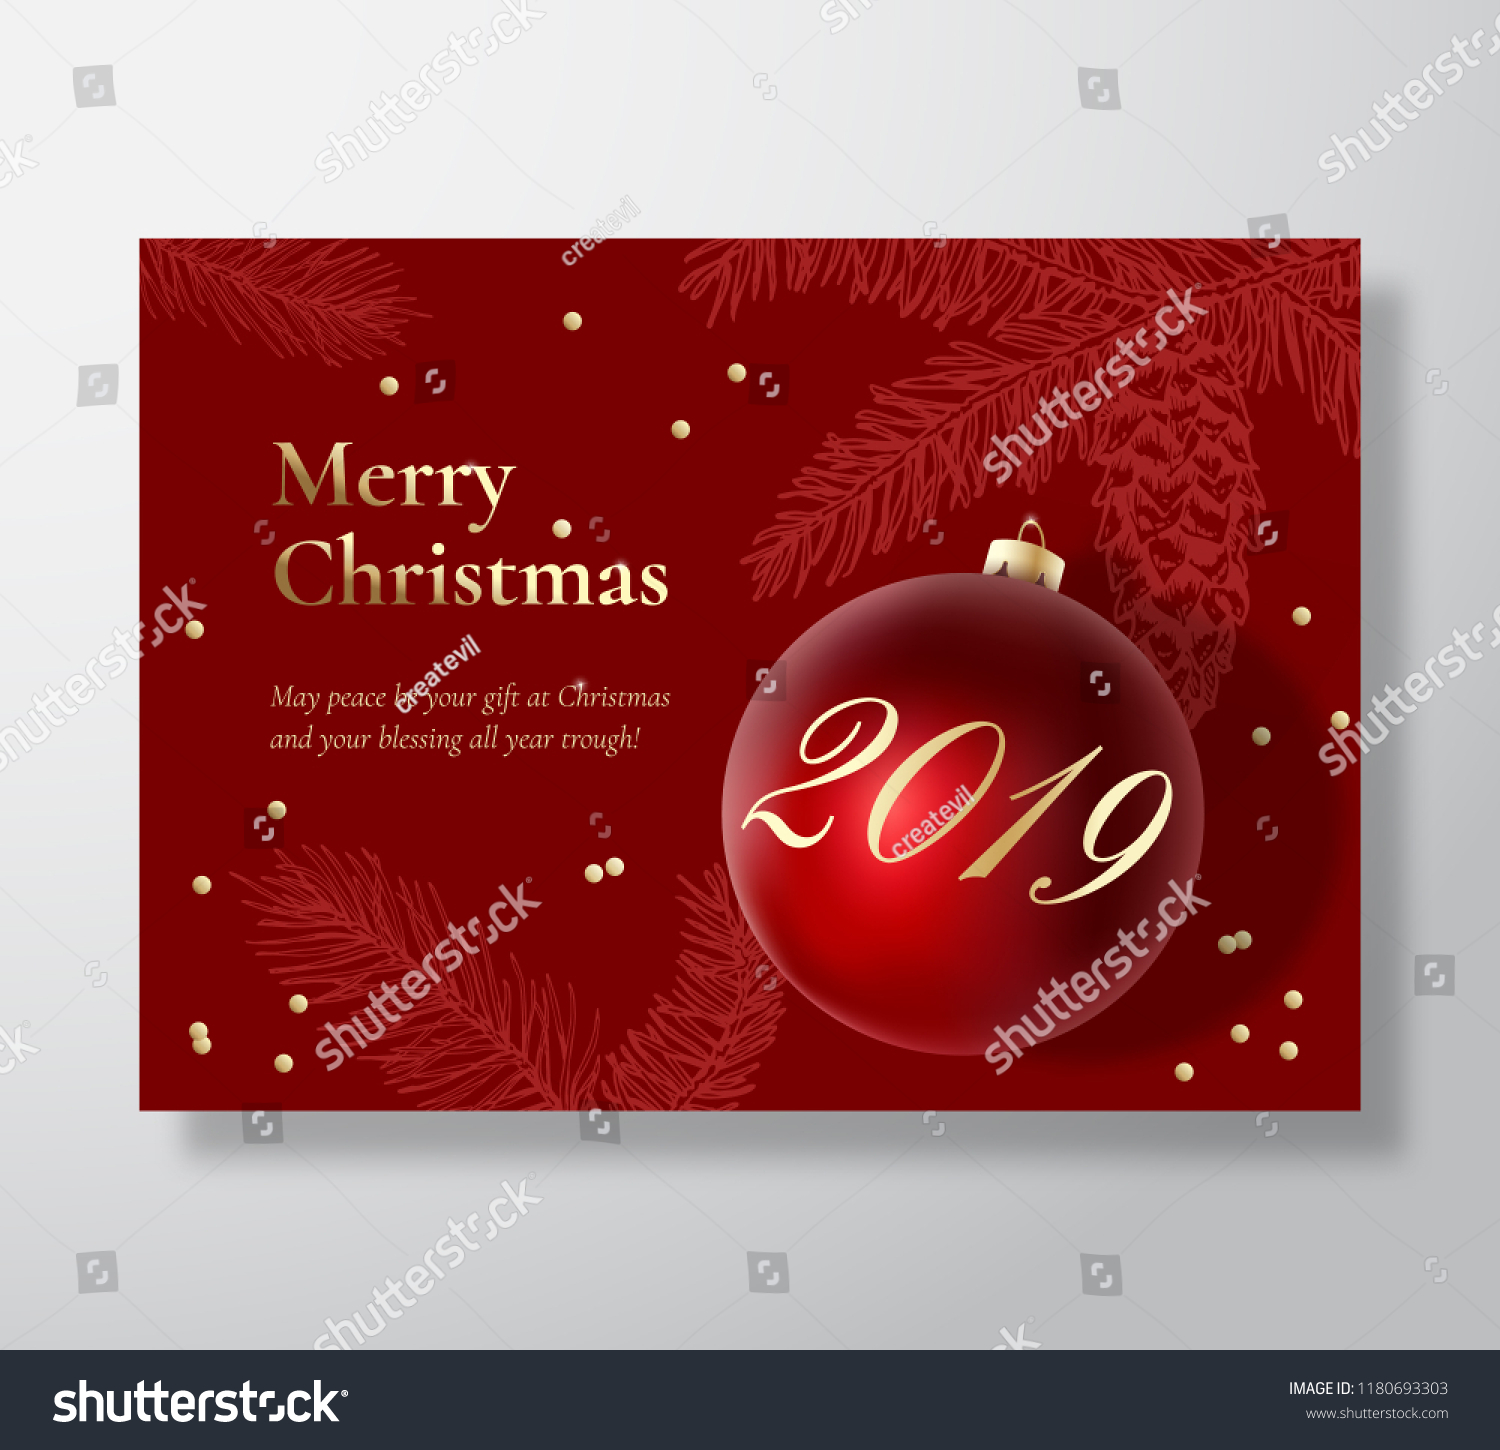 Classy Christmas Banners Mscit Banners